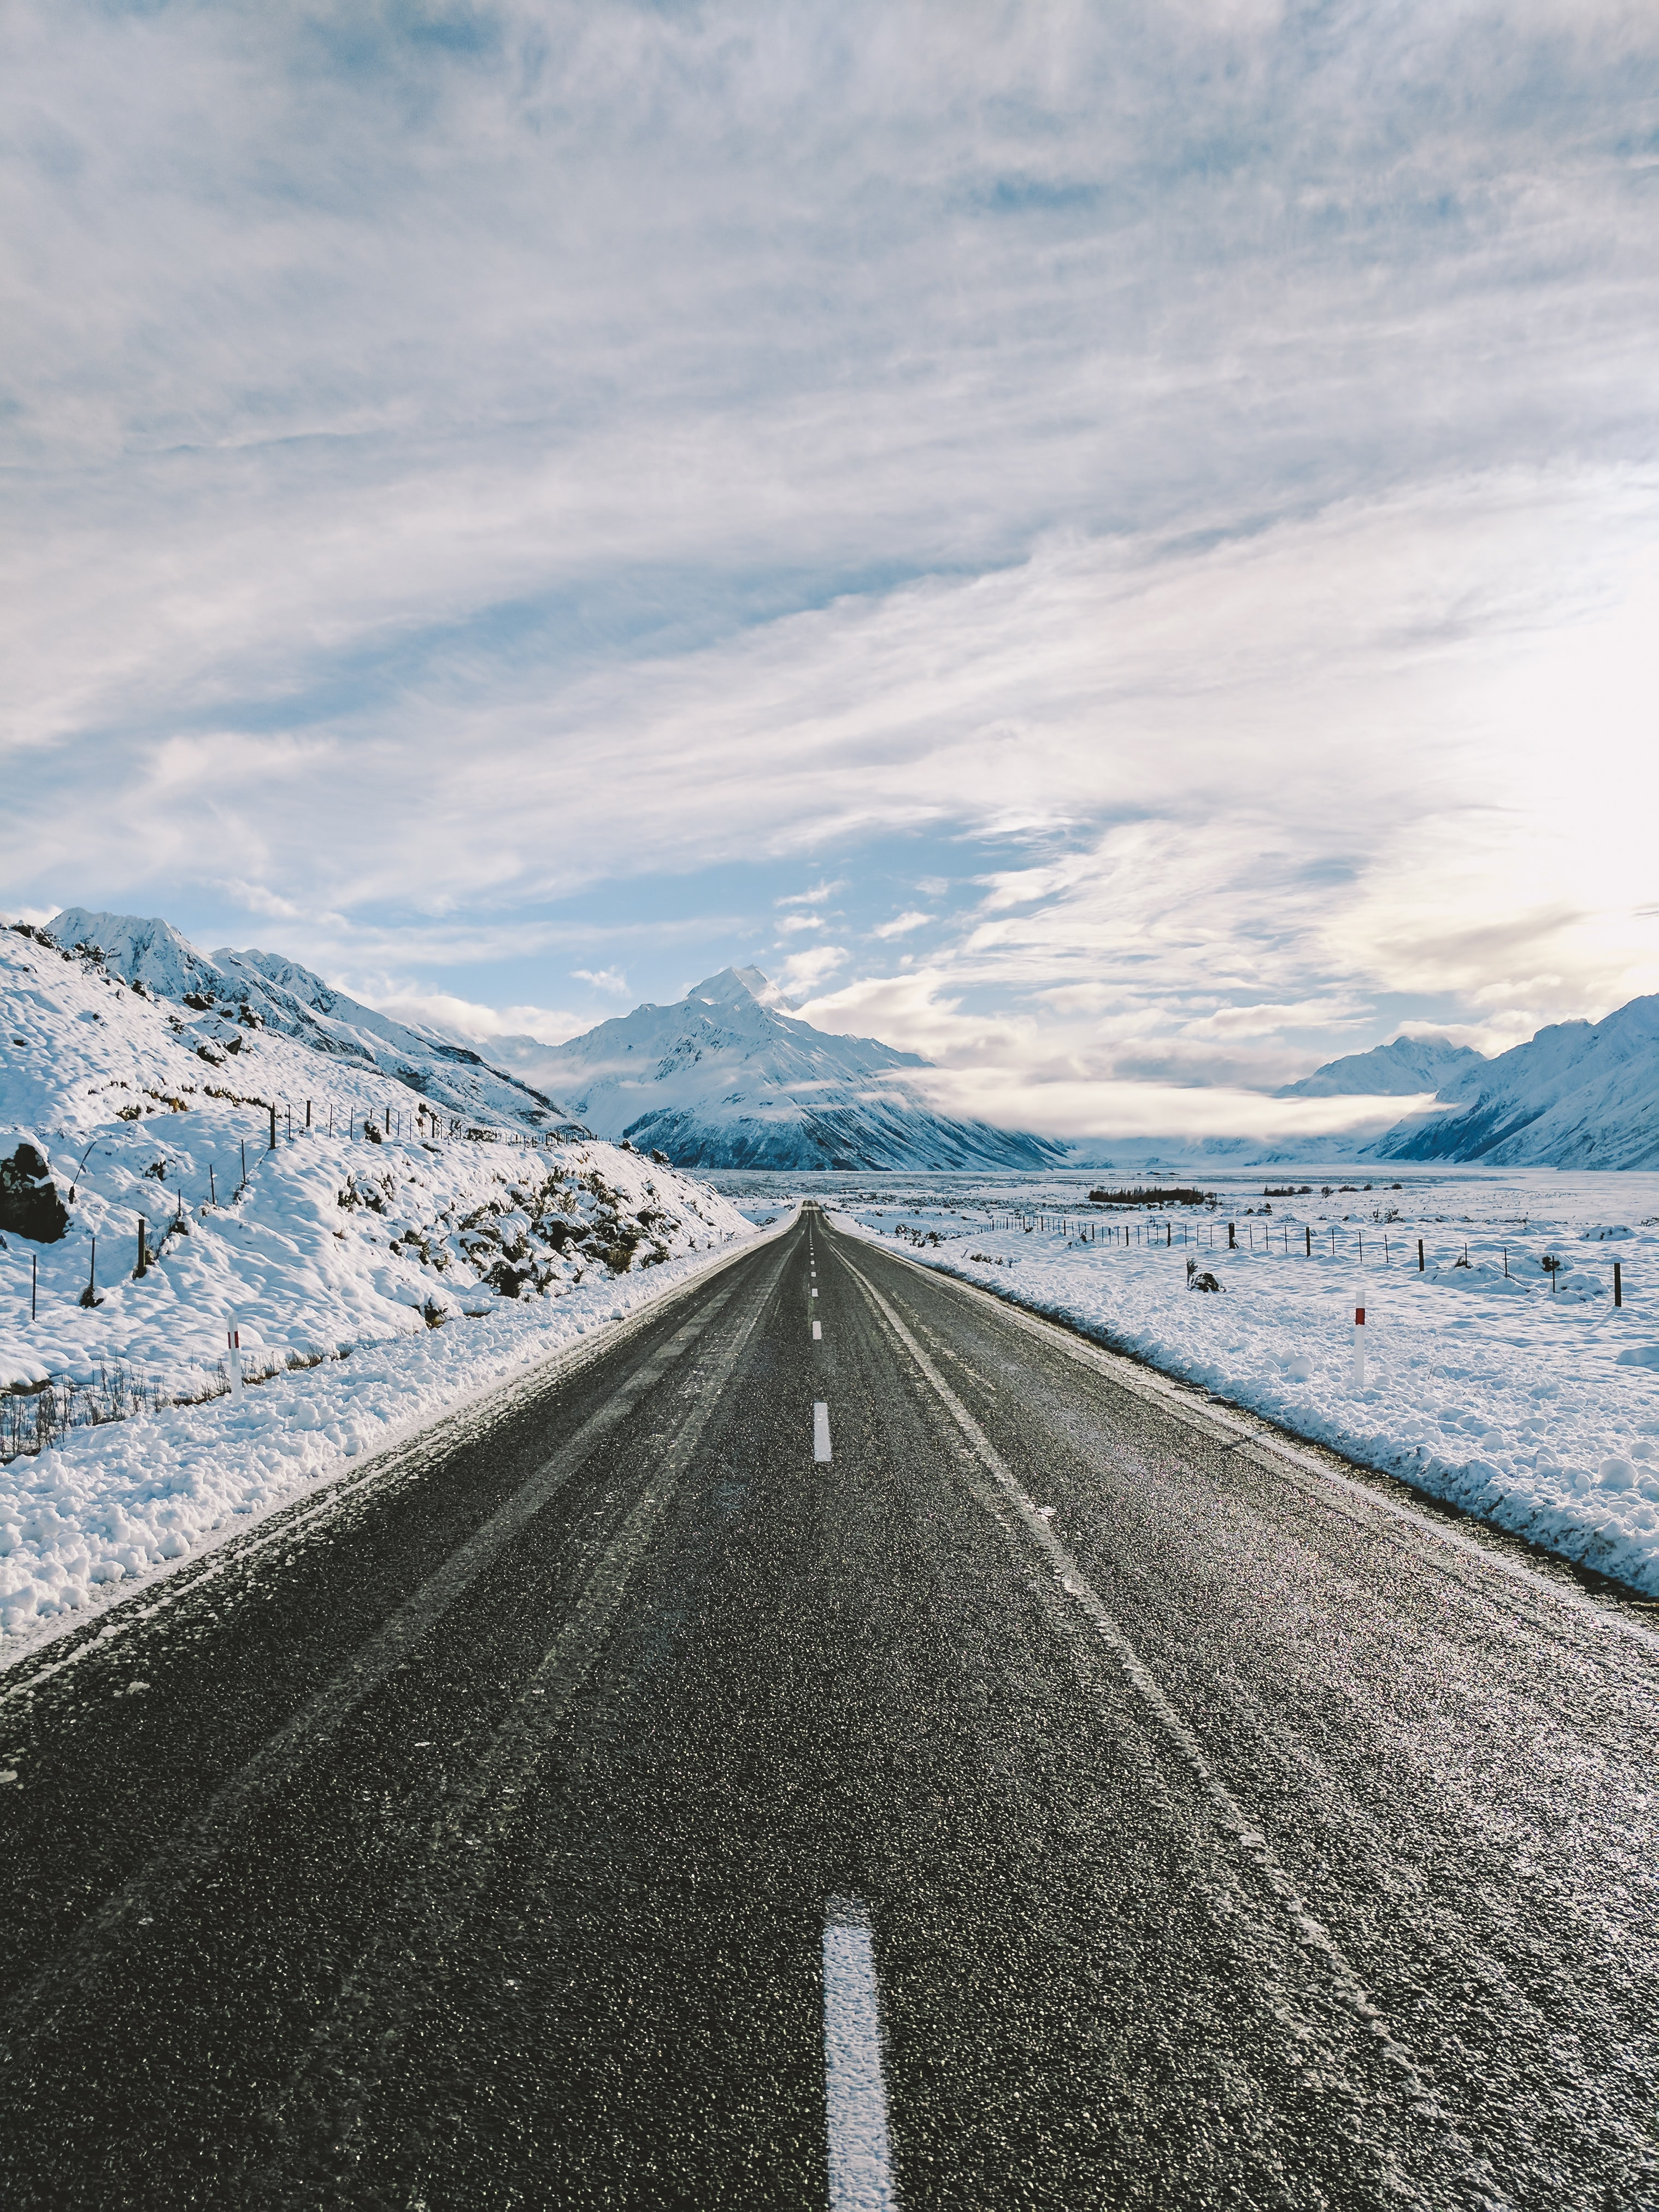 An empty road near snow covered mountains.